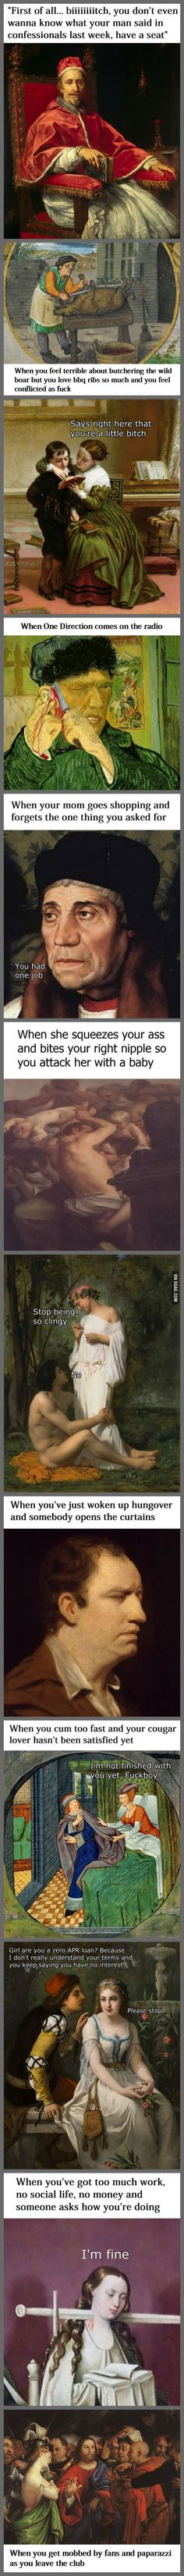 Classical Art Memes Latest (Part-15)